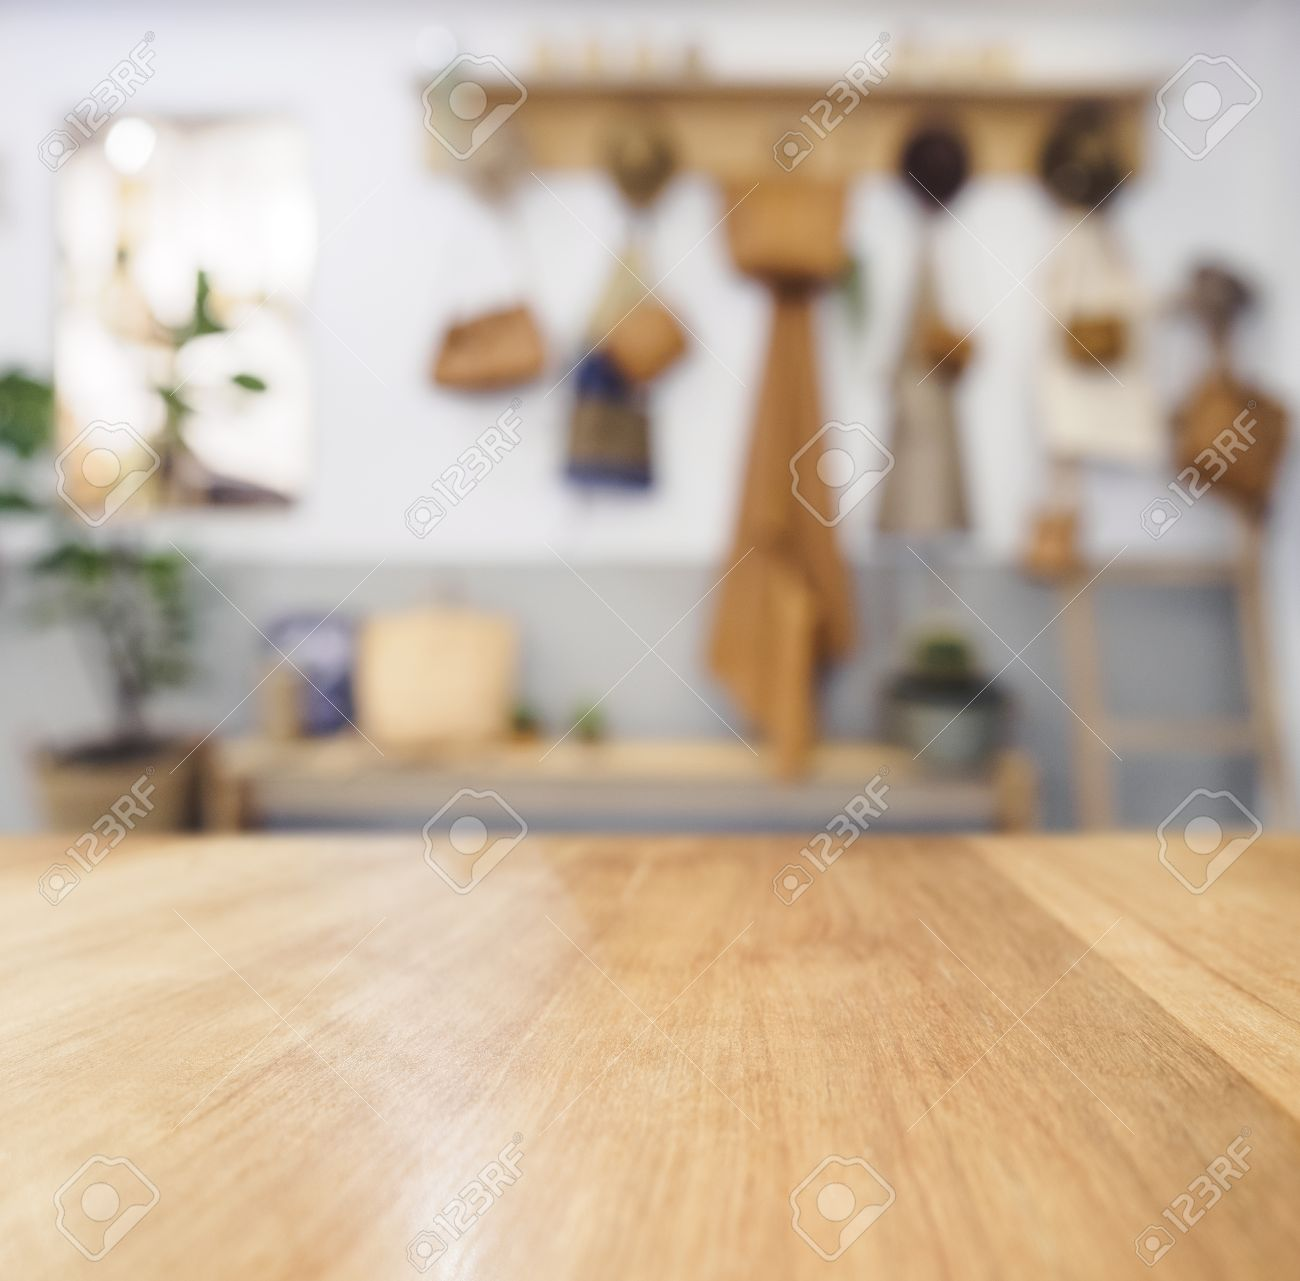 Kitchen Table Top Background table top wooden counter blurred kitchen background natural